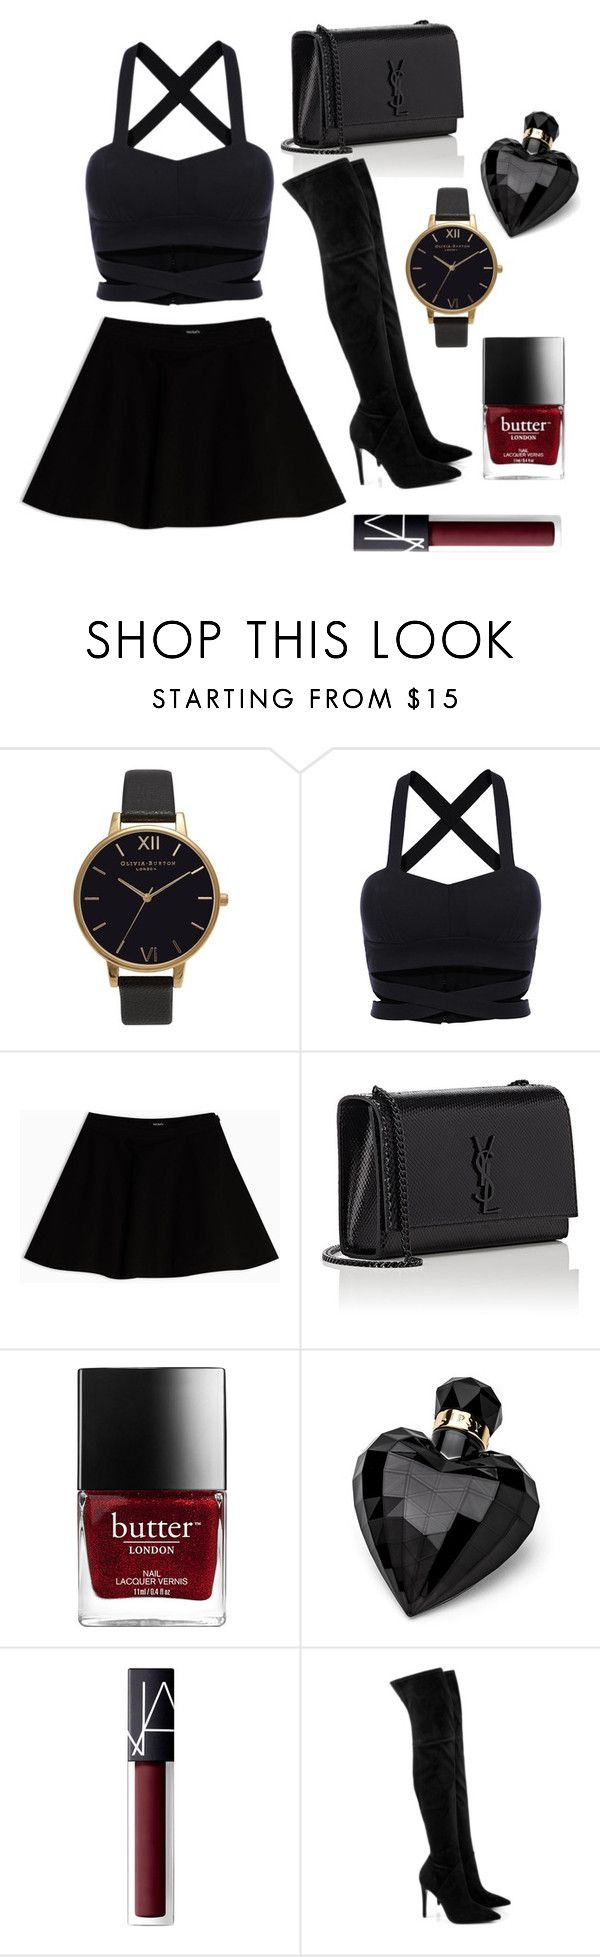 """""""Chic"""" by electraz on Polyvore featuring Olivia Burton, Max&Co., Yves Saint Laurent, Lipsy, NARS Cosmetics and Kendall + Kylie"""